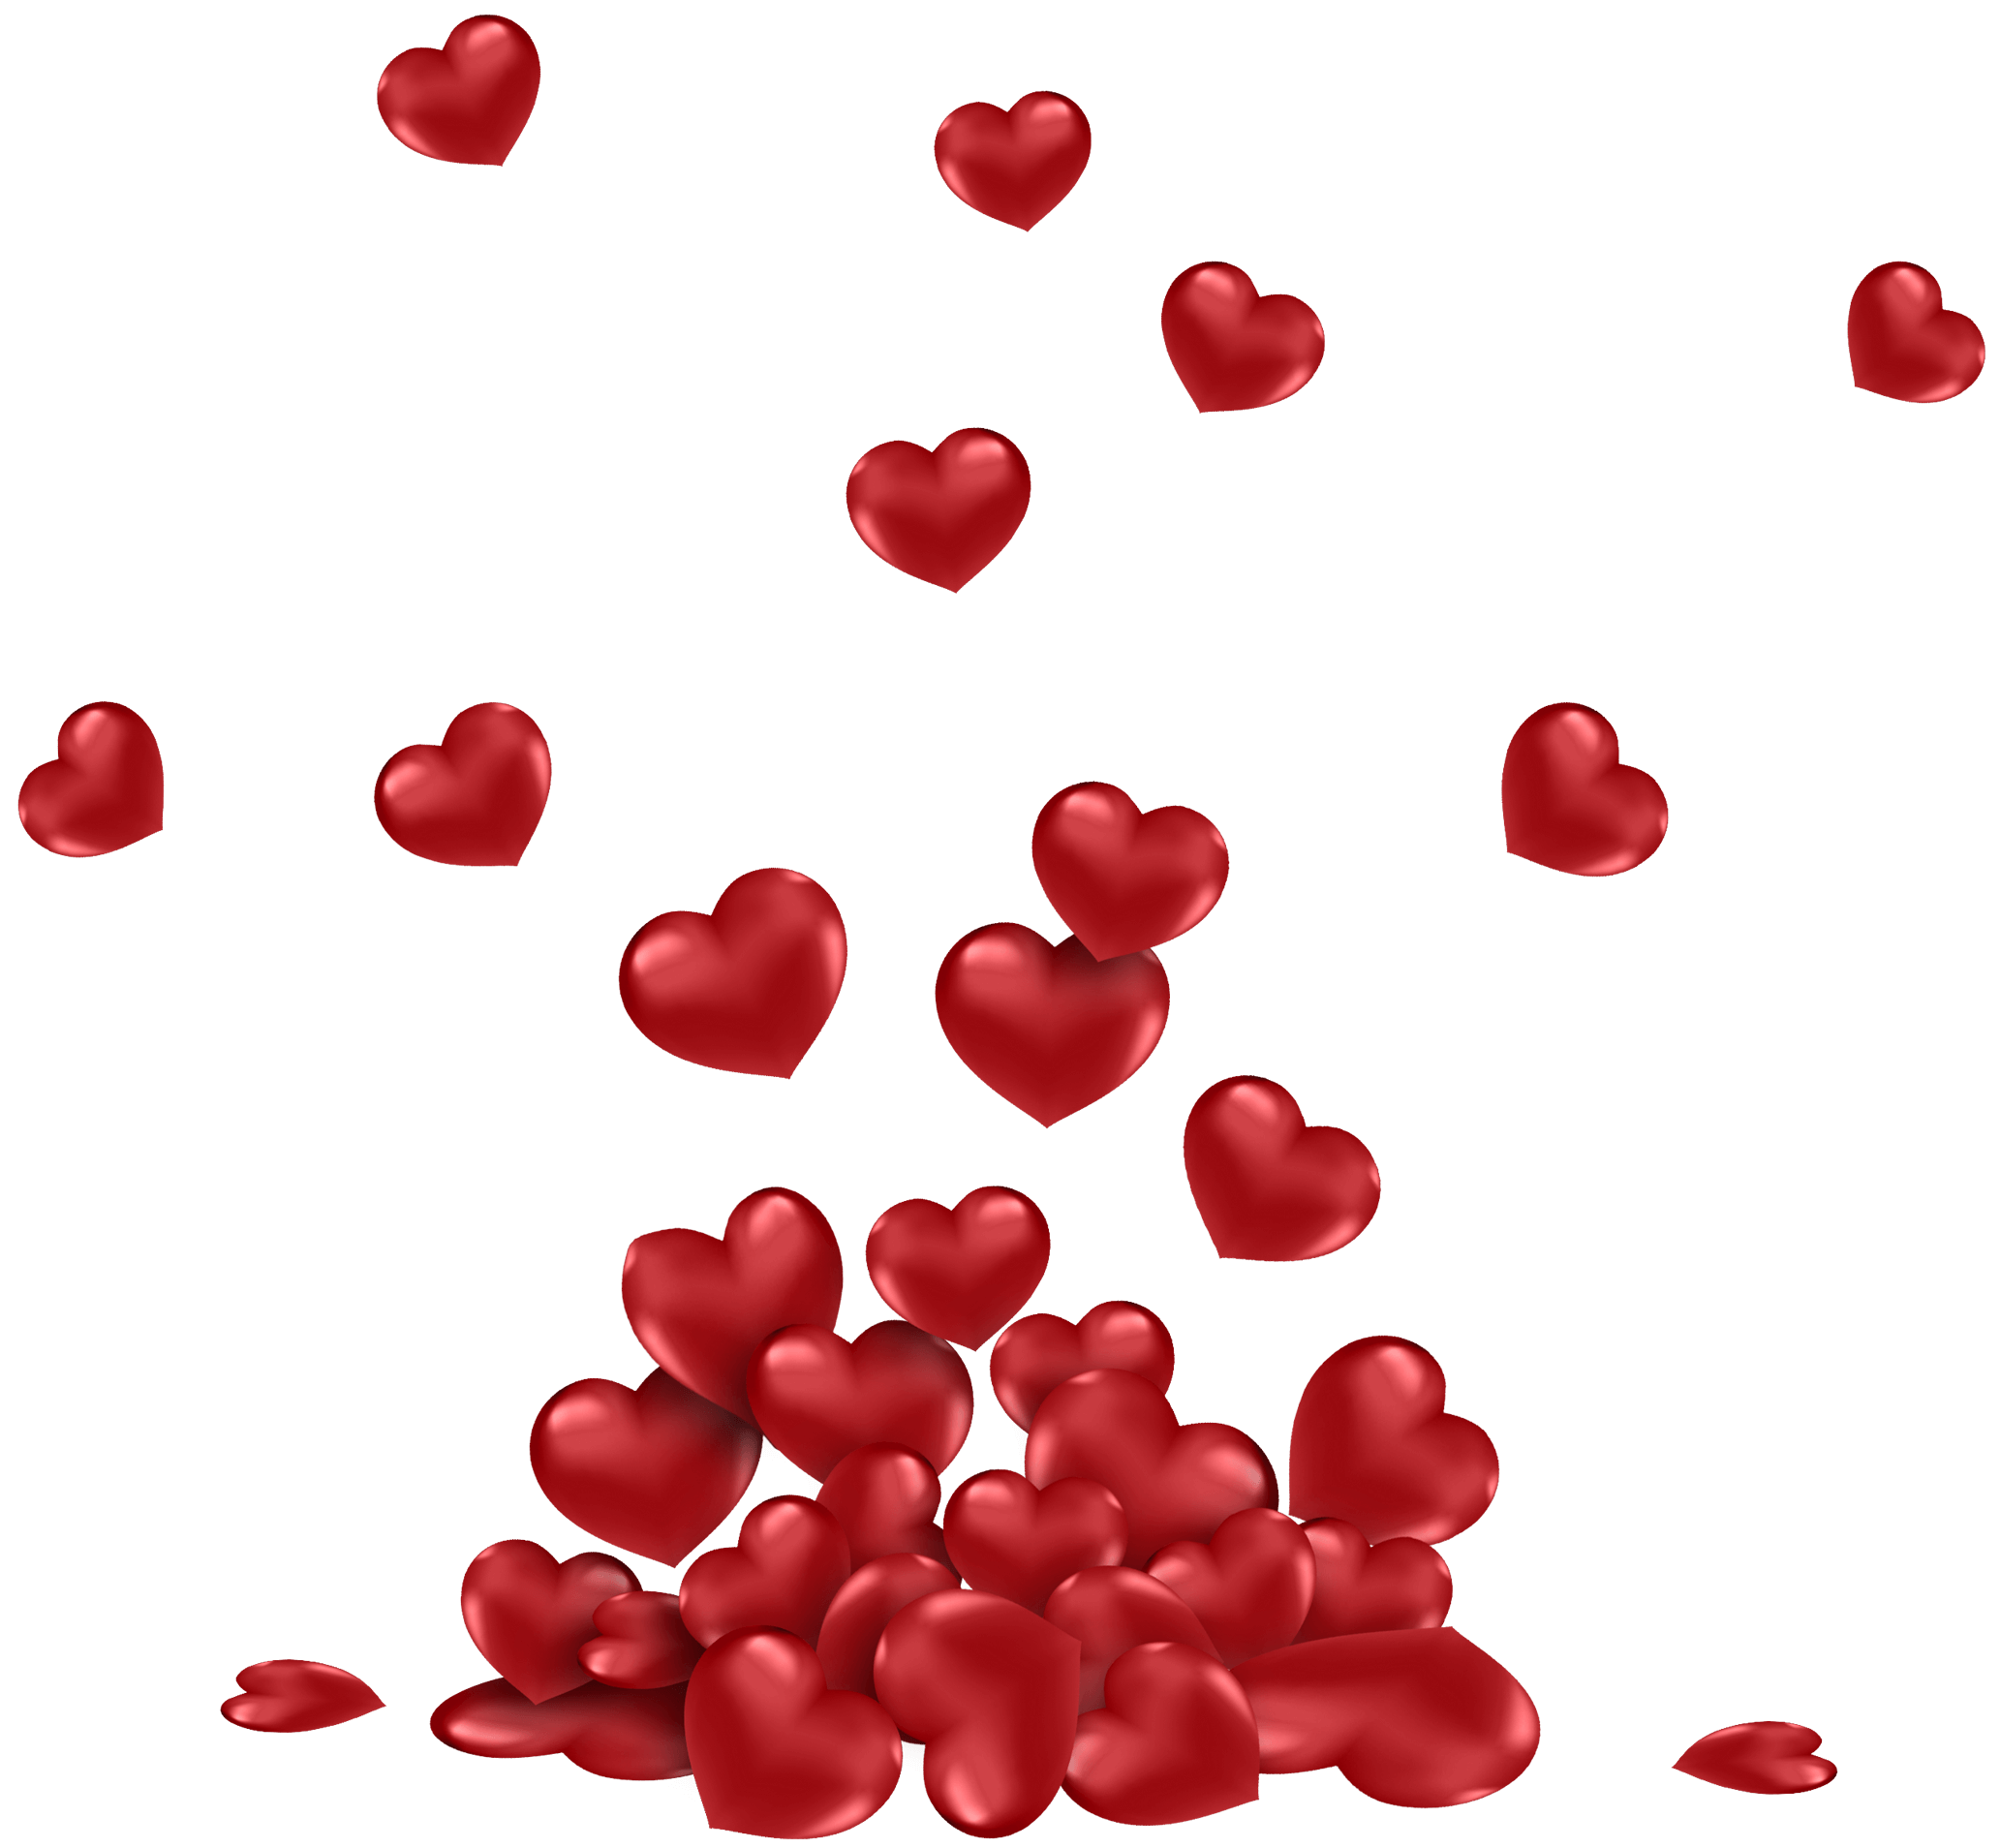 Hearts png. Bunch of picture